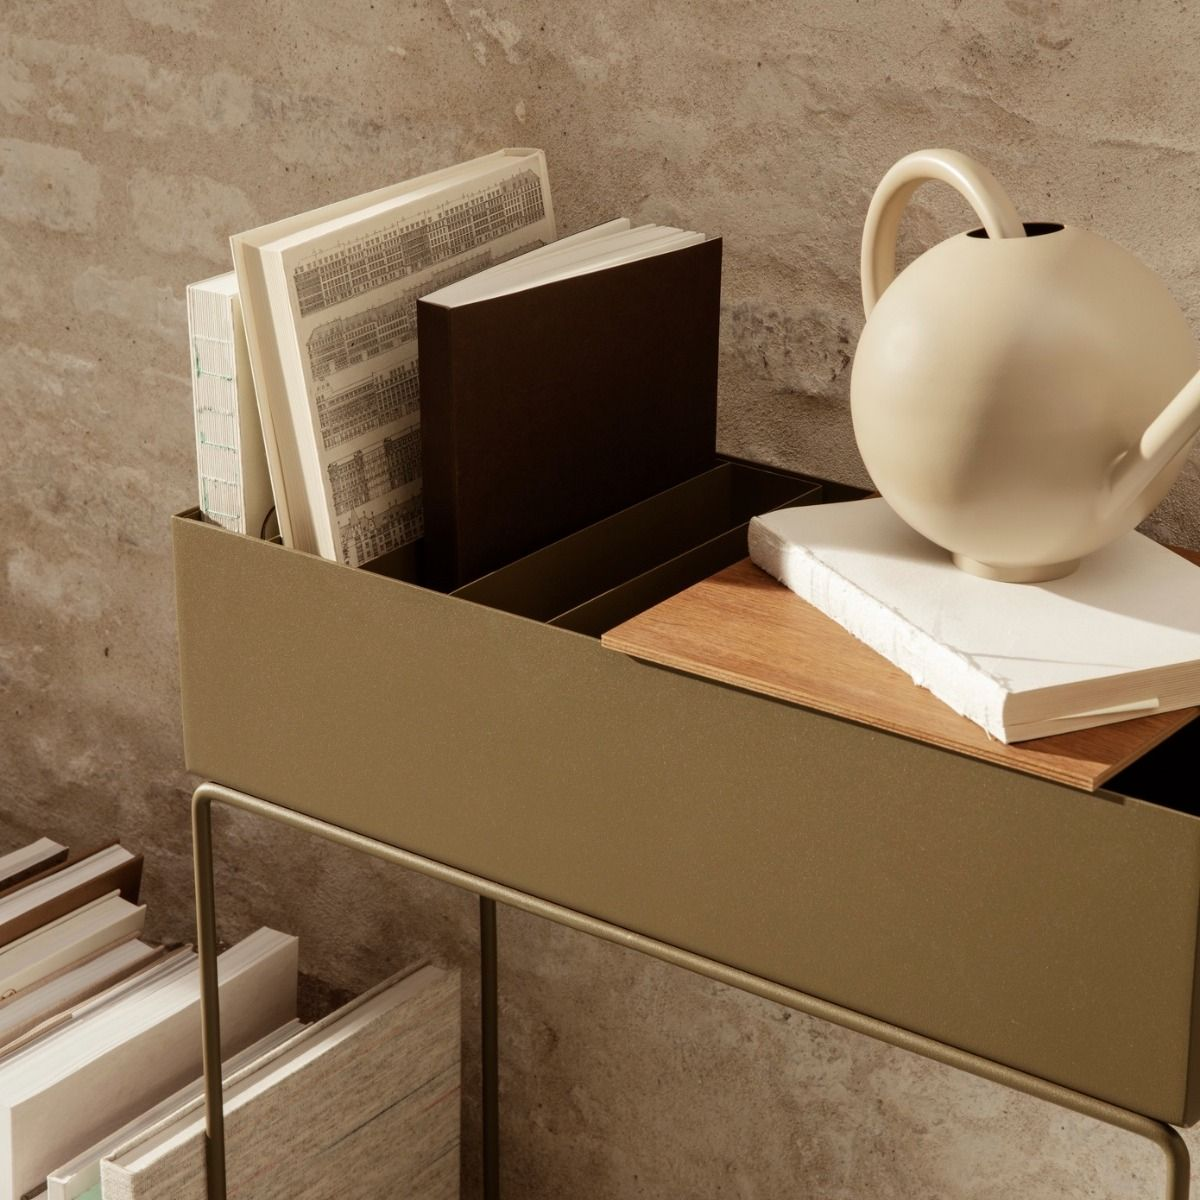 ferm living plant box with smoked lid being used as a book rack